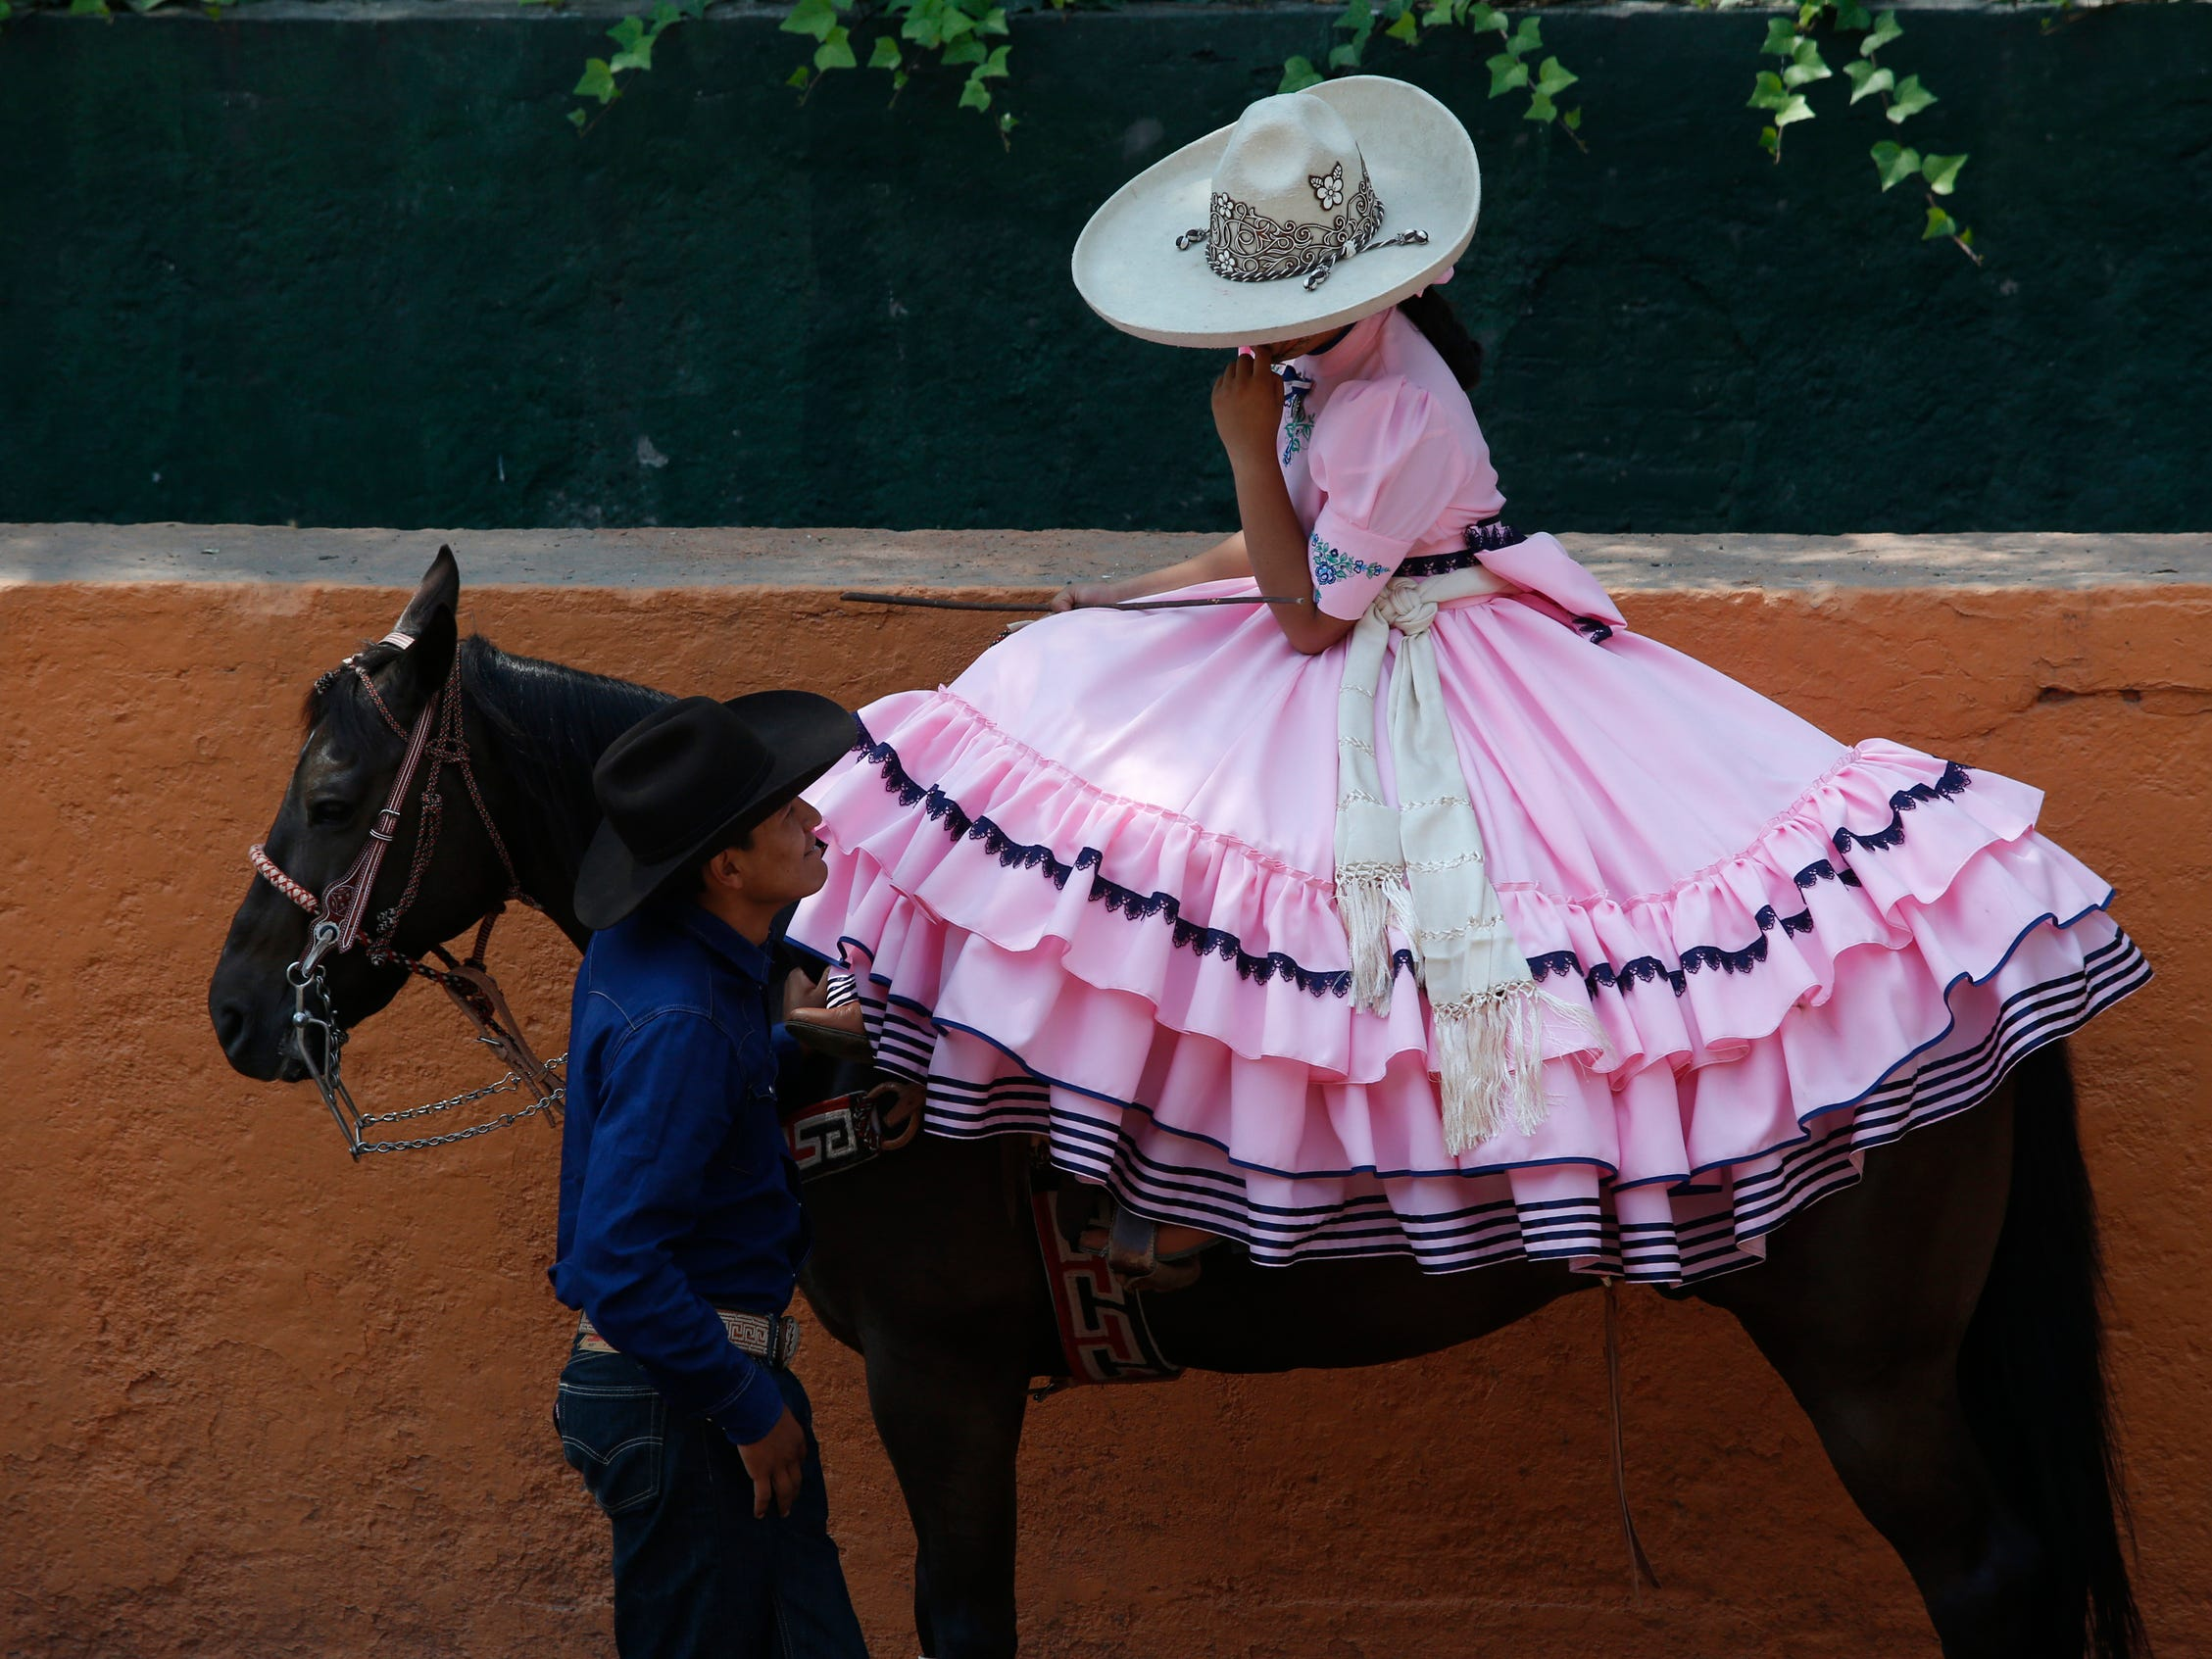 A cowboy chats with an Escaramuza before her presentation at the Rancho del Charro on the outskirts of Mexico City, Mexico, Saturday, May 18, 2019. Mexico's Charros National Association is marking their 98th anniversary, celebrated from May 15 -June 2.